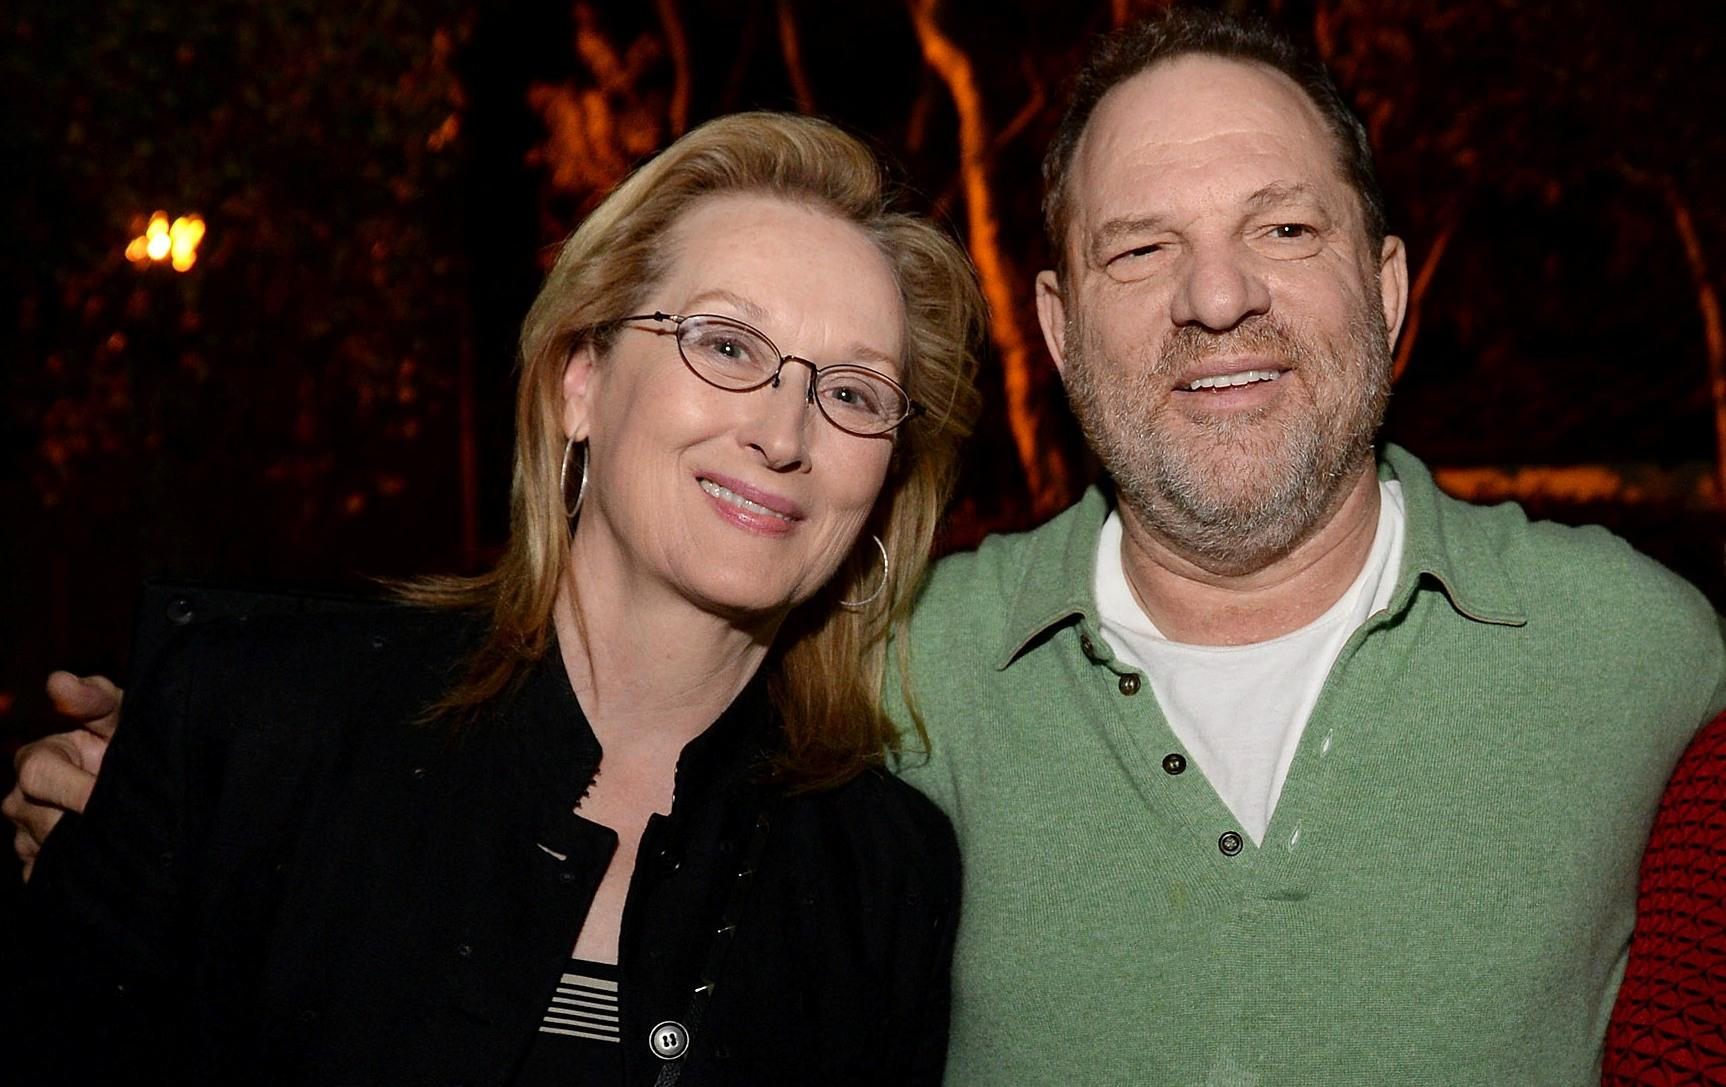 Meryl Streep and Harvey Weinstein reportedly will team up in The Senator s Wife a film that looks at the behind-the-scenes influence wielded by the NRA to defeat a gun-control bill after Sandy Hook